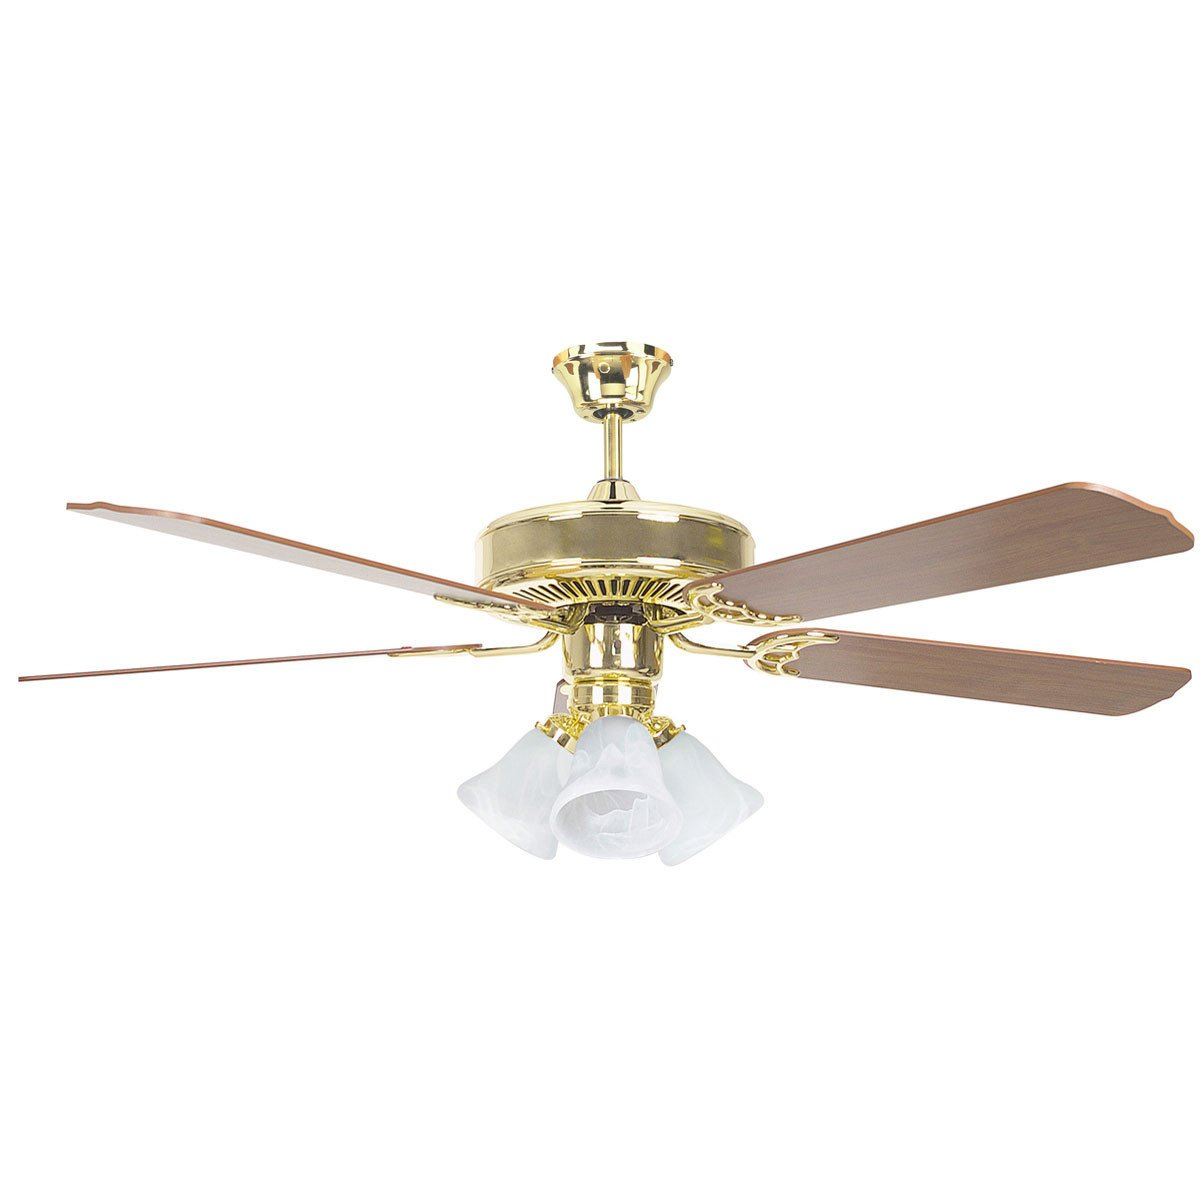 "Concord Fans 52"" Heritage Home Elegant Polished Brass Ceiling Fan with 3 Lights"